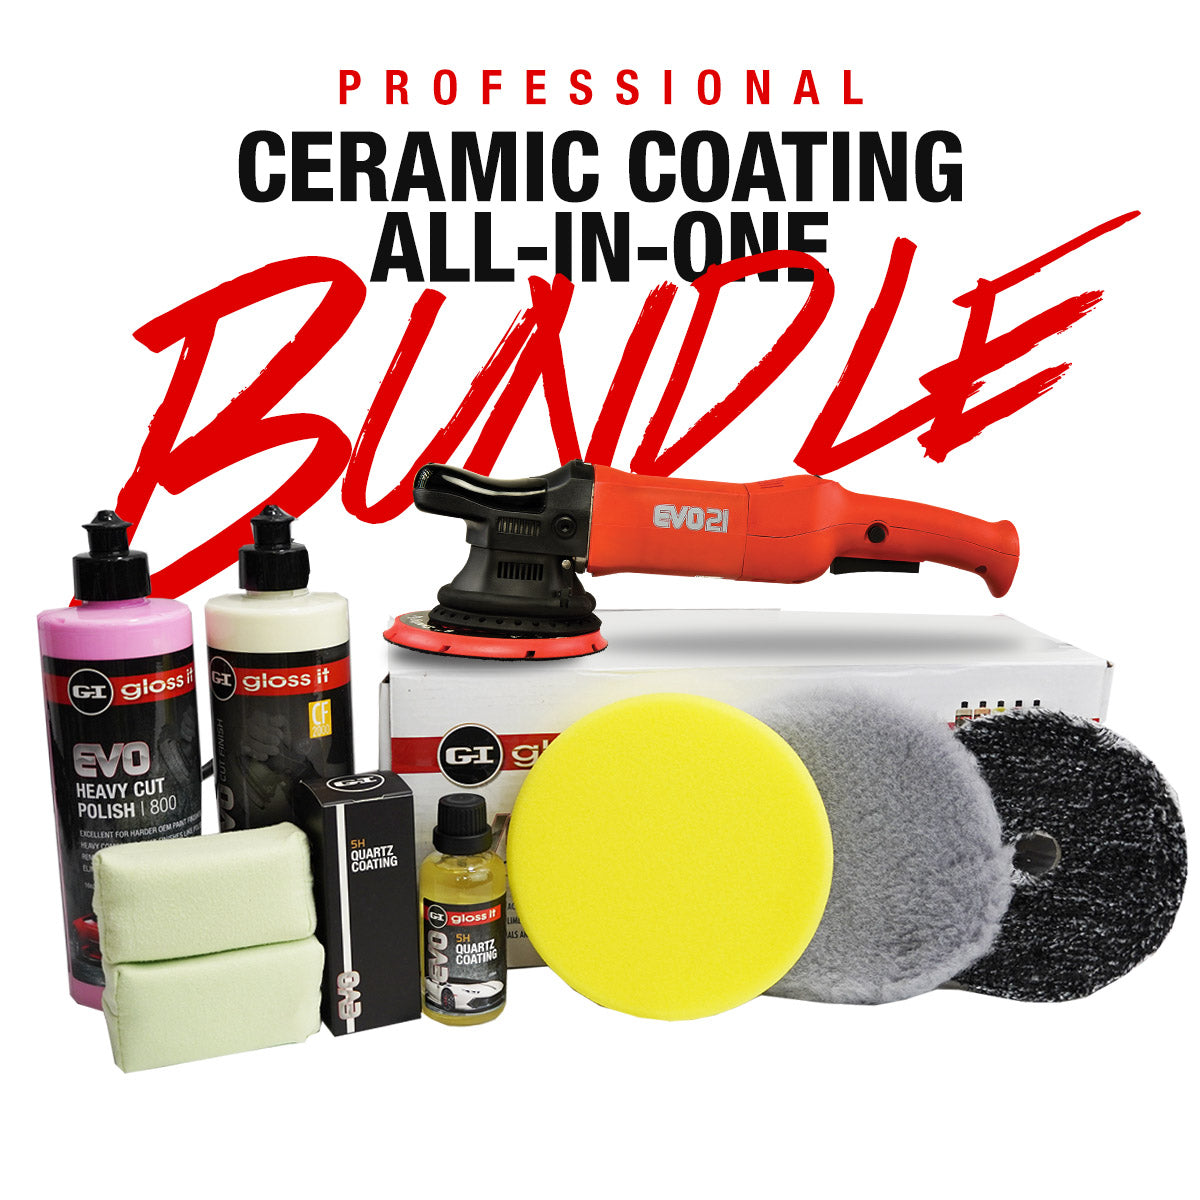 Professional Ceramic Coating All-In-One Bundle